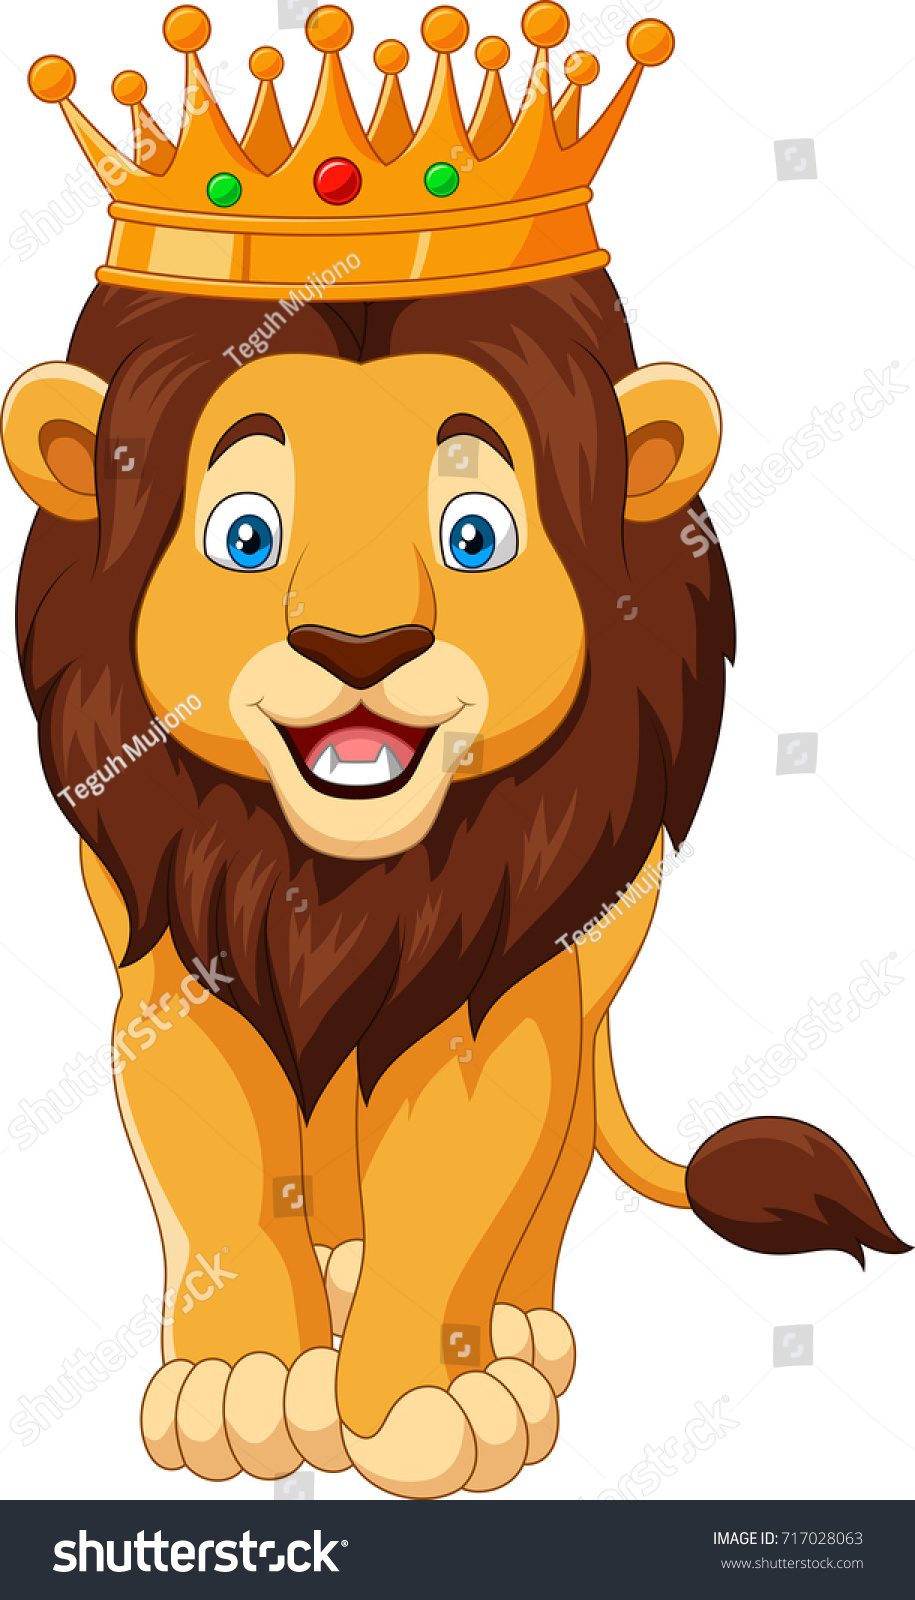 Cartoon Lion Wearing Crown Stock Vector Royalty Free 717028063 Choose from 1030000+ cartoon head crown illustration graphic resources and download in the form of png, eps, ai or psd. https www shutterstock com image vector cartoon lion wearing crown 717028063